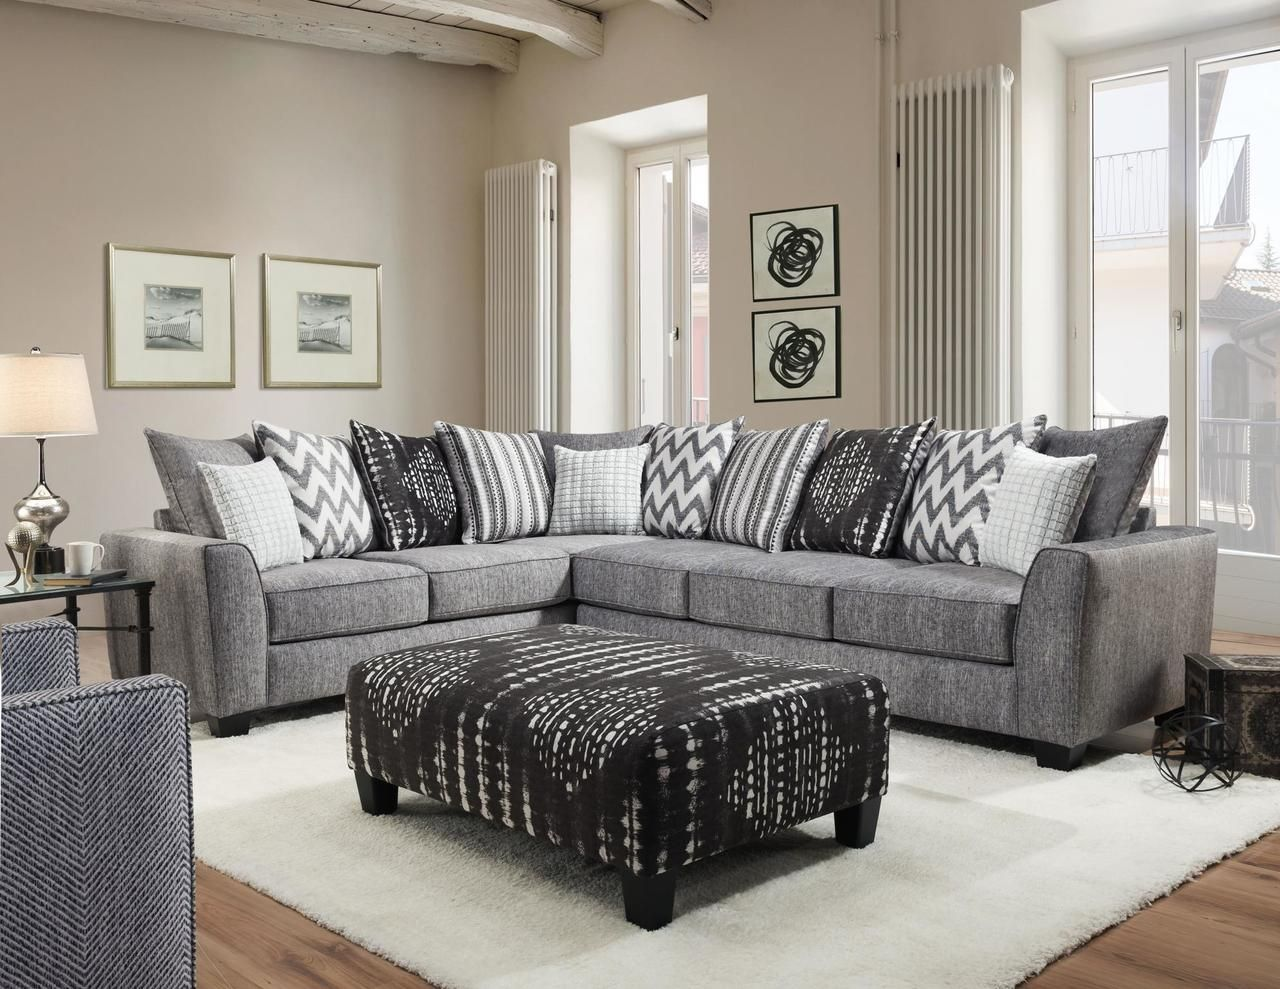 Albany Stonewash Black Sectional Sofa In 2020 Affordable